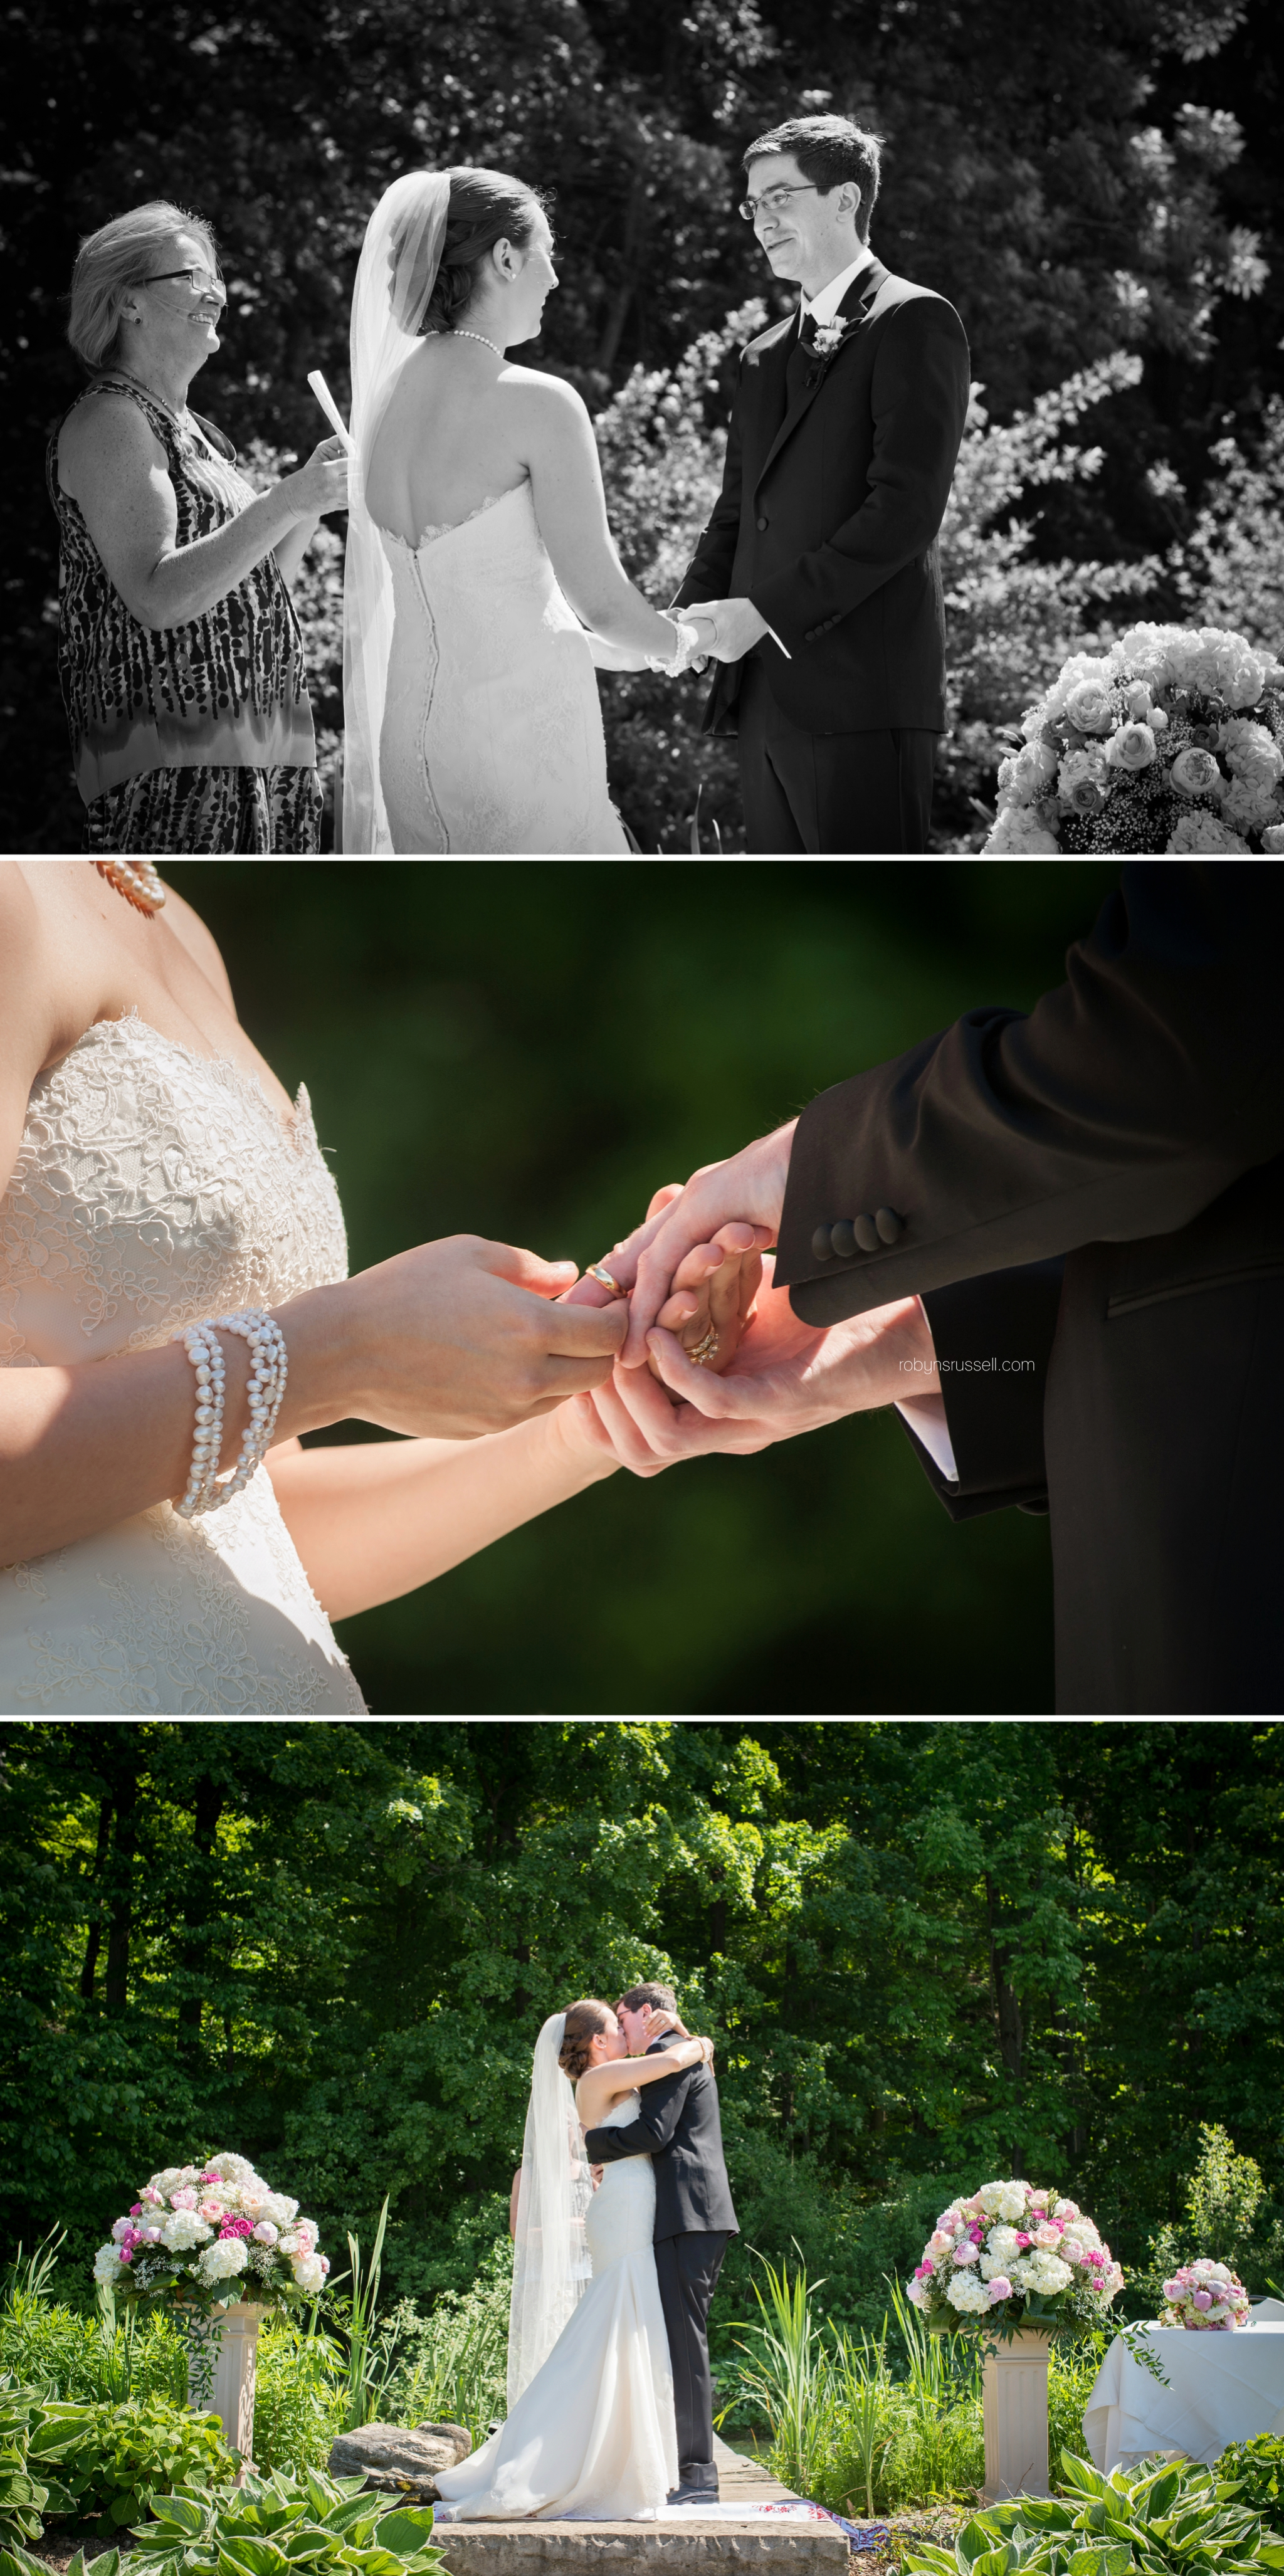 16-bride-and-groom-exchange-vows-and-rings.jpg